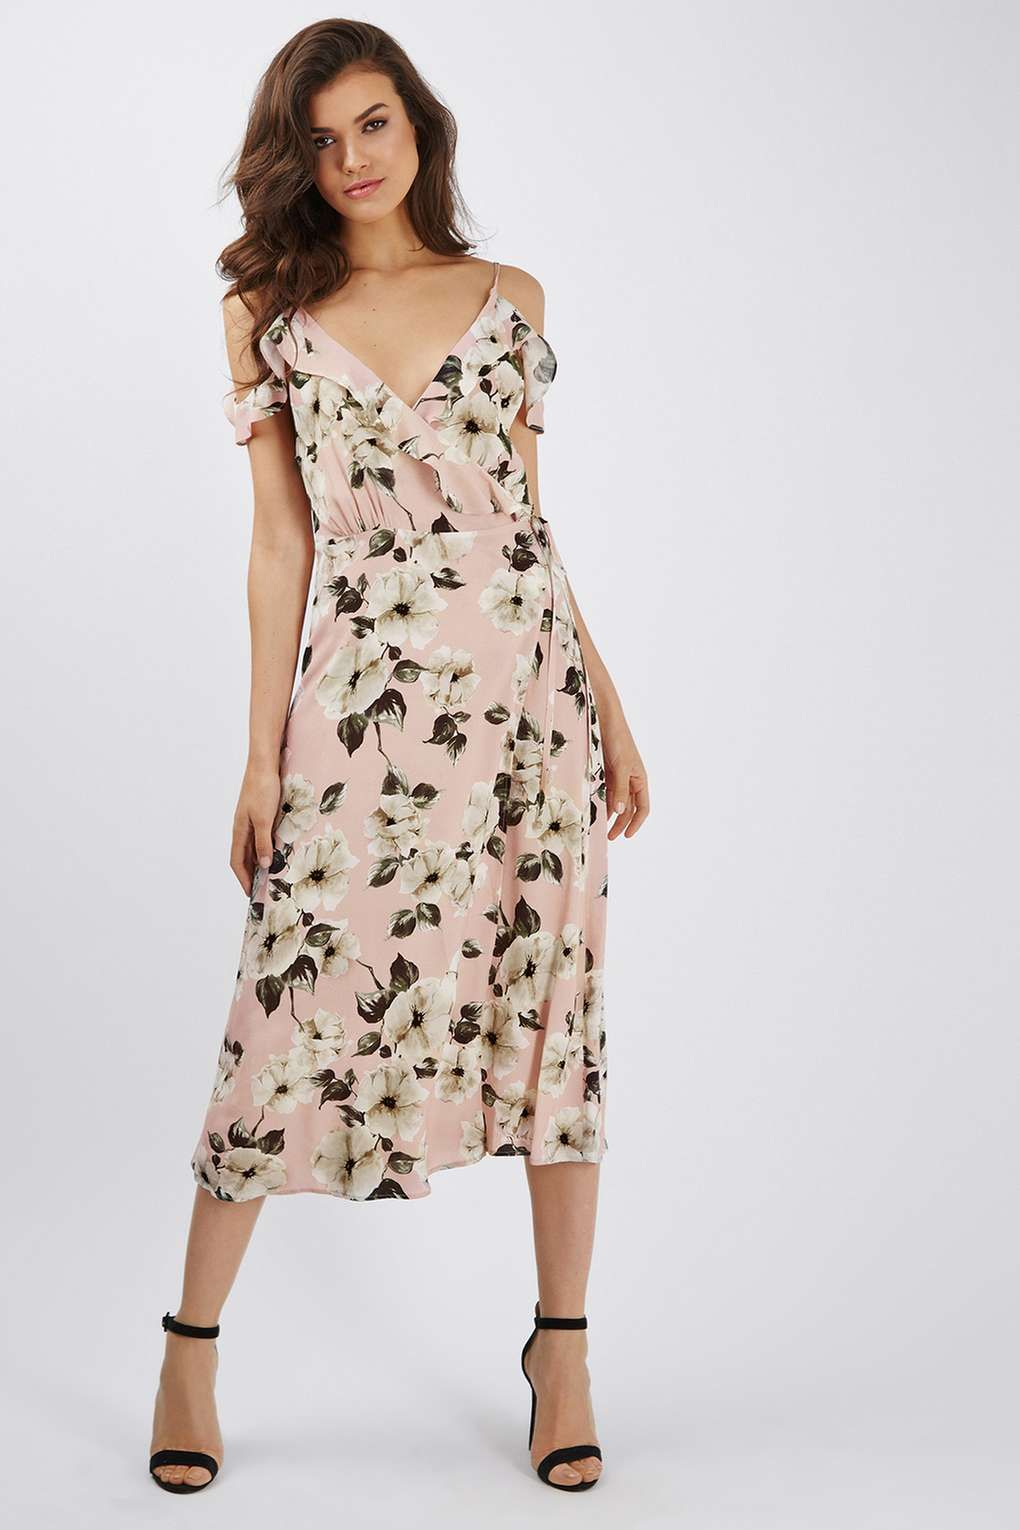 Floral Midi Dress Dresses Pinterest Midi Dresses Topshop And